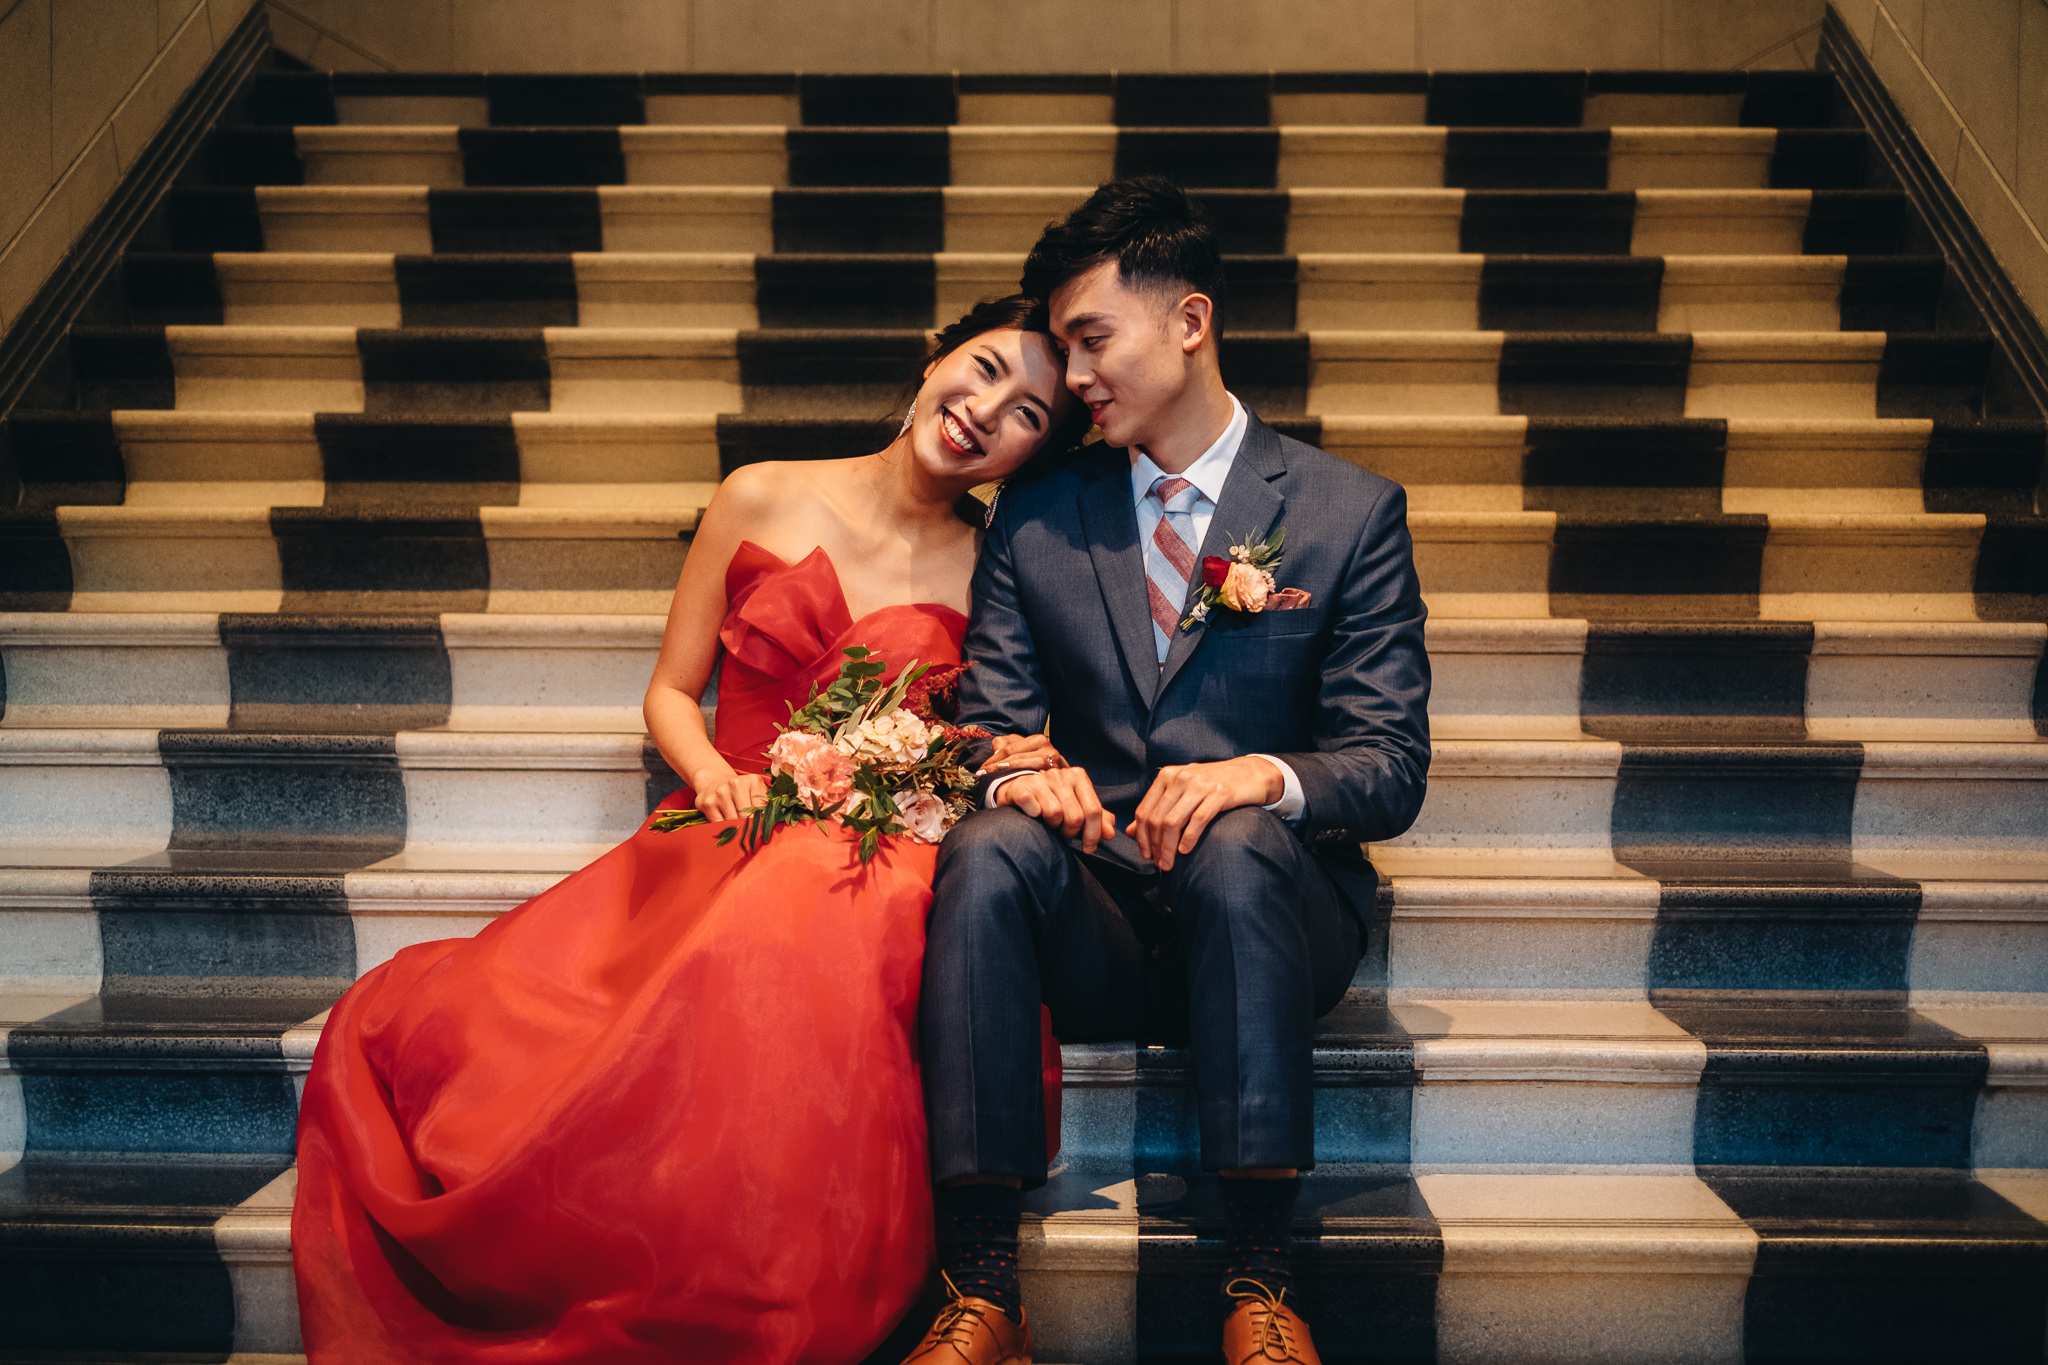 Kenneth & Lixin Pre-Wed (resized for sharing) - 012.jpg